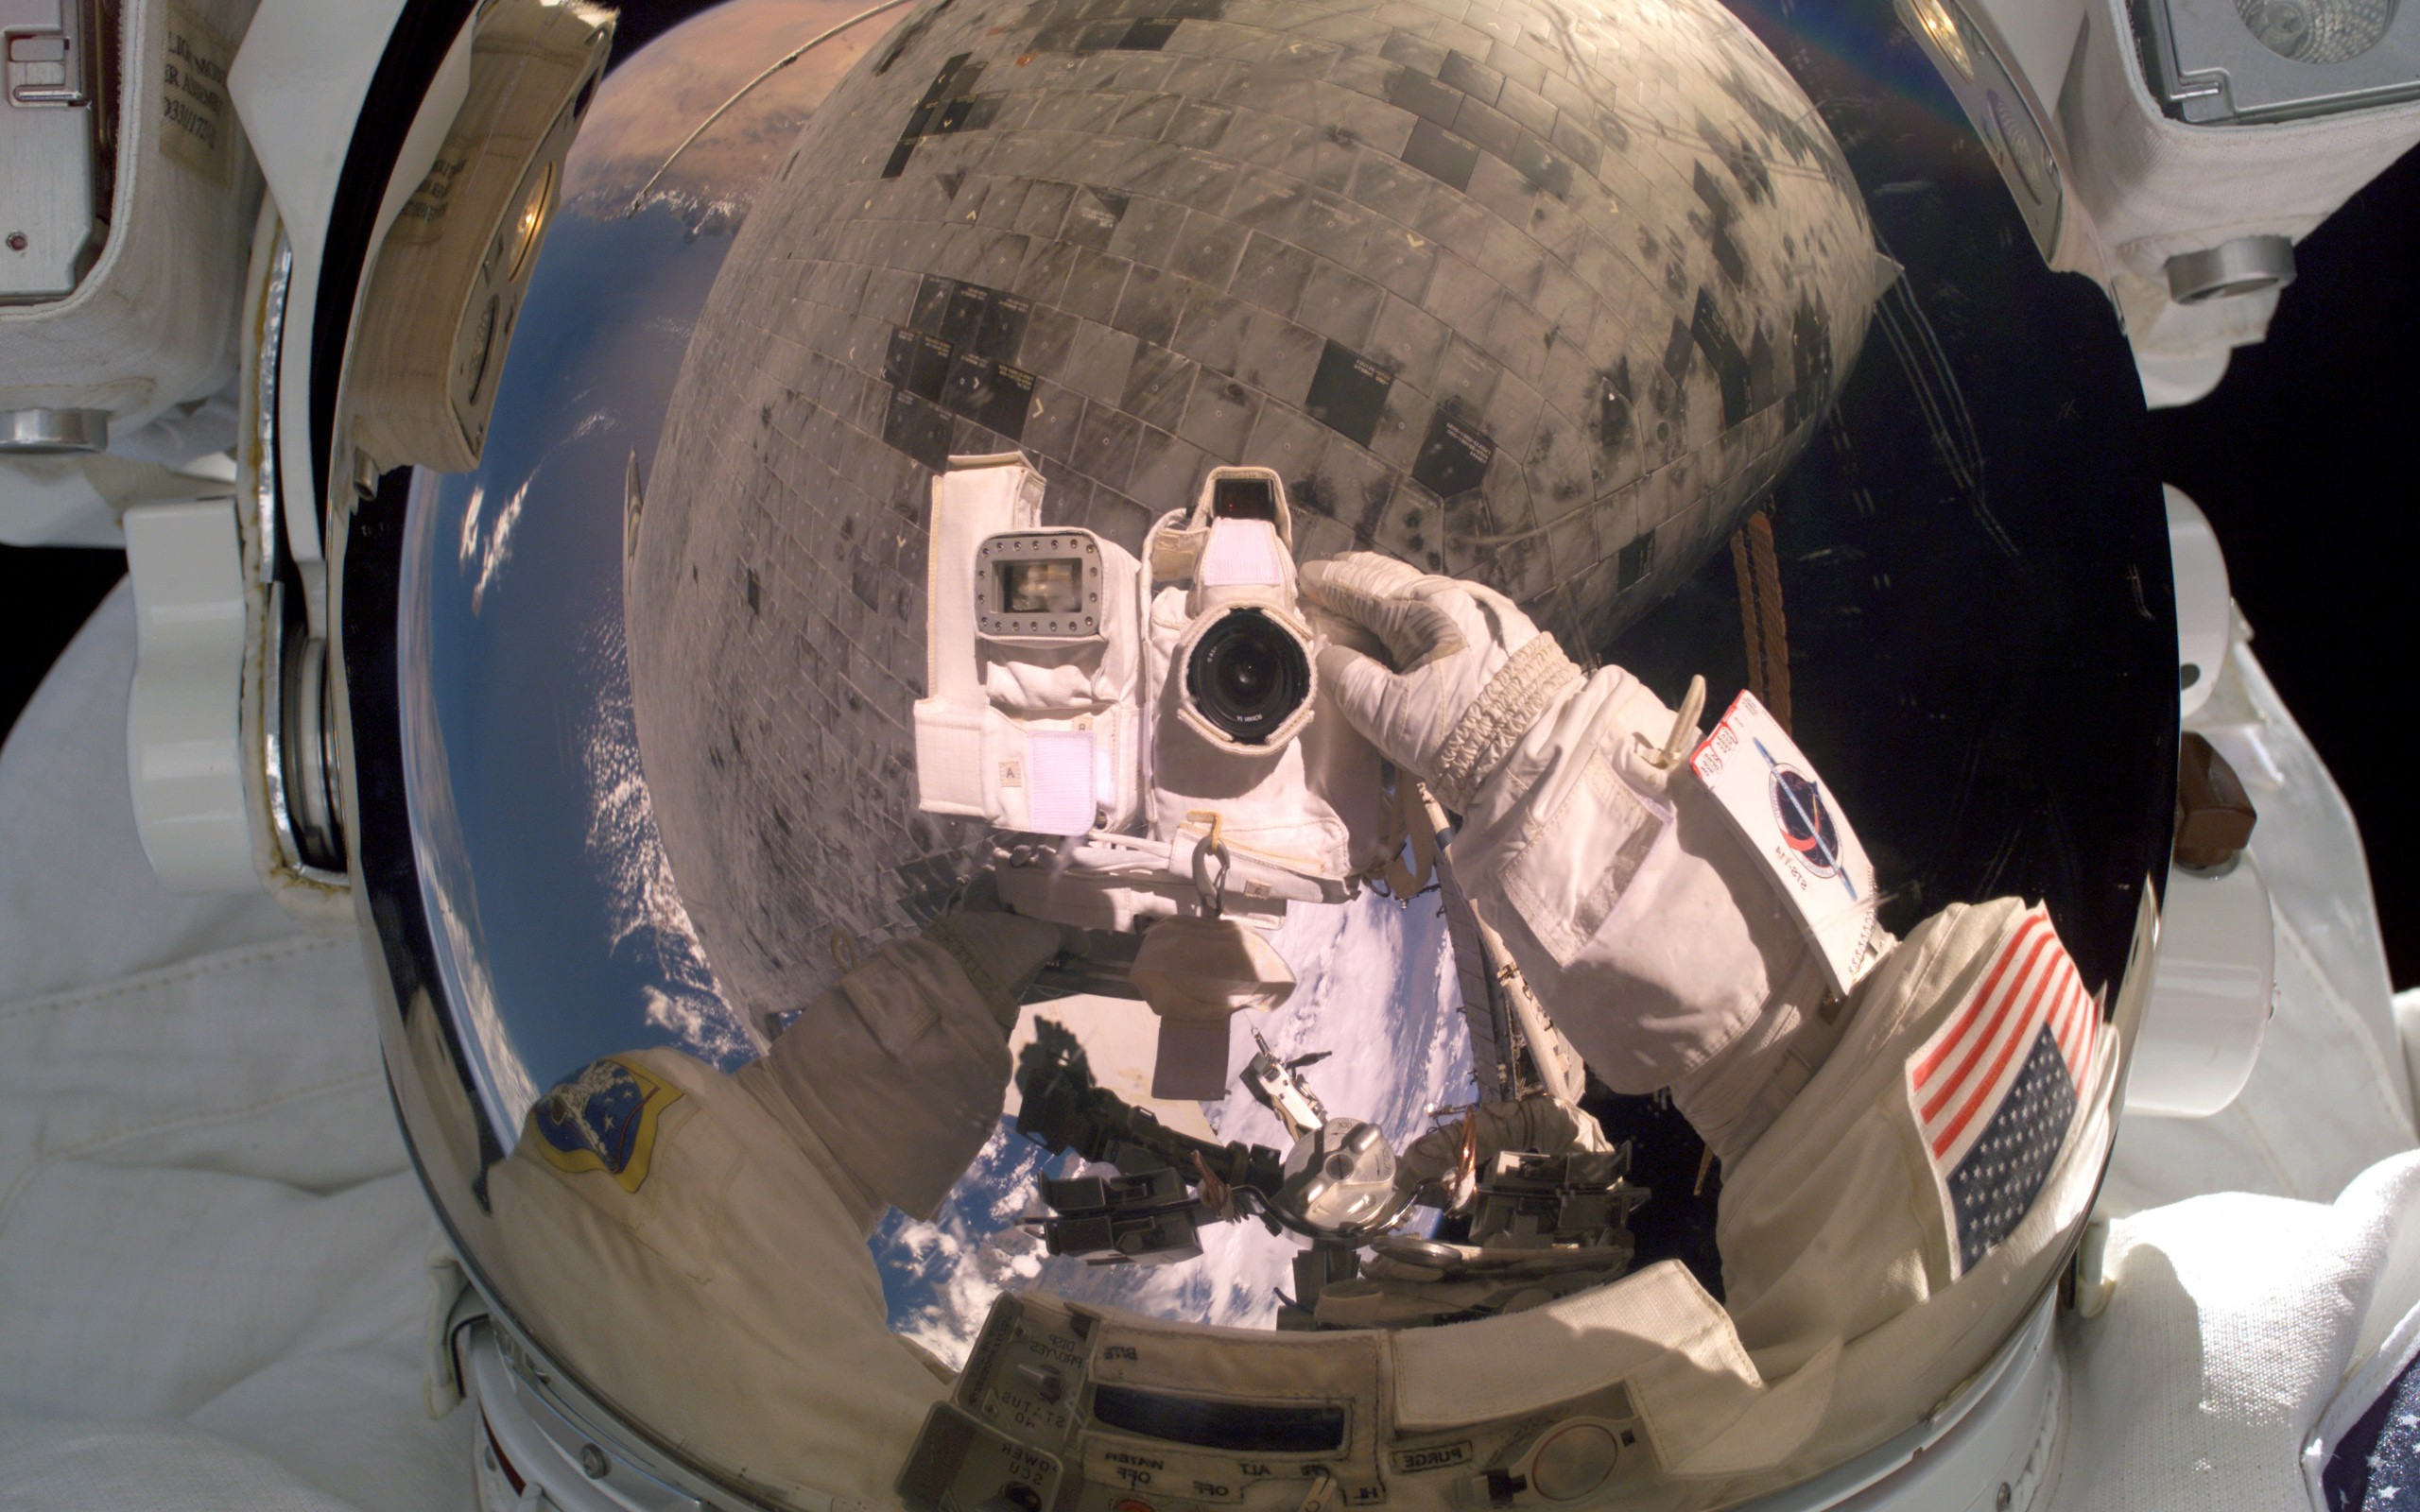 General 2560x1600 photography space space suit camera reflection